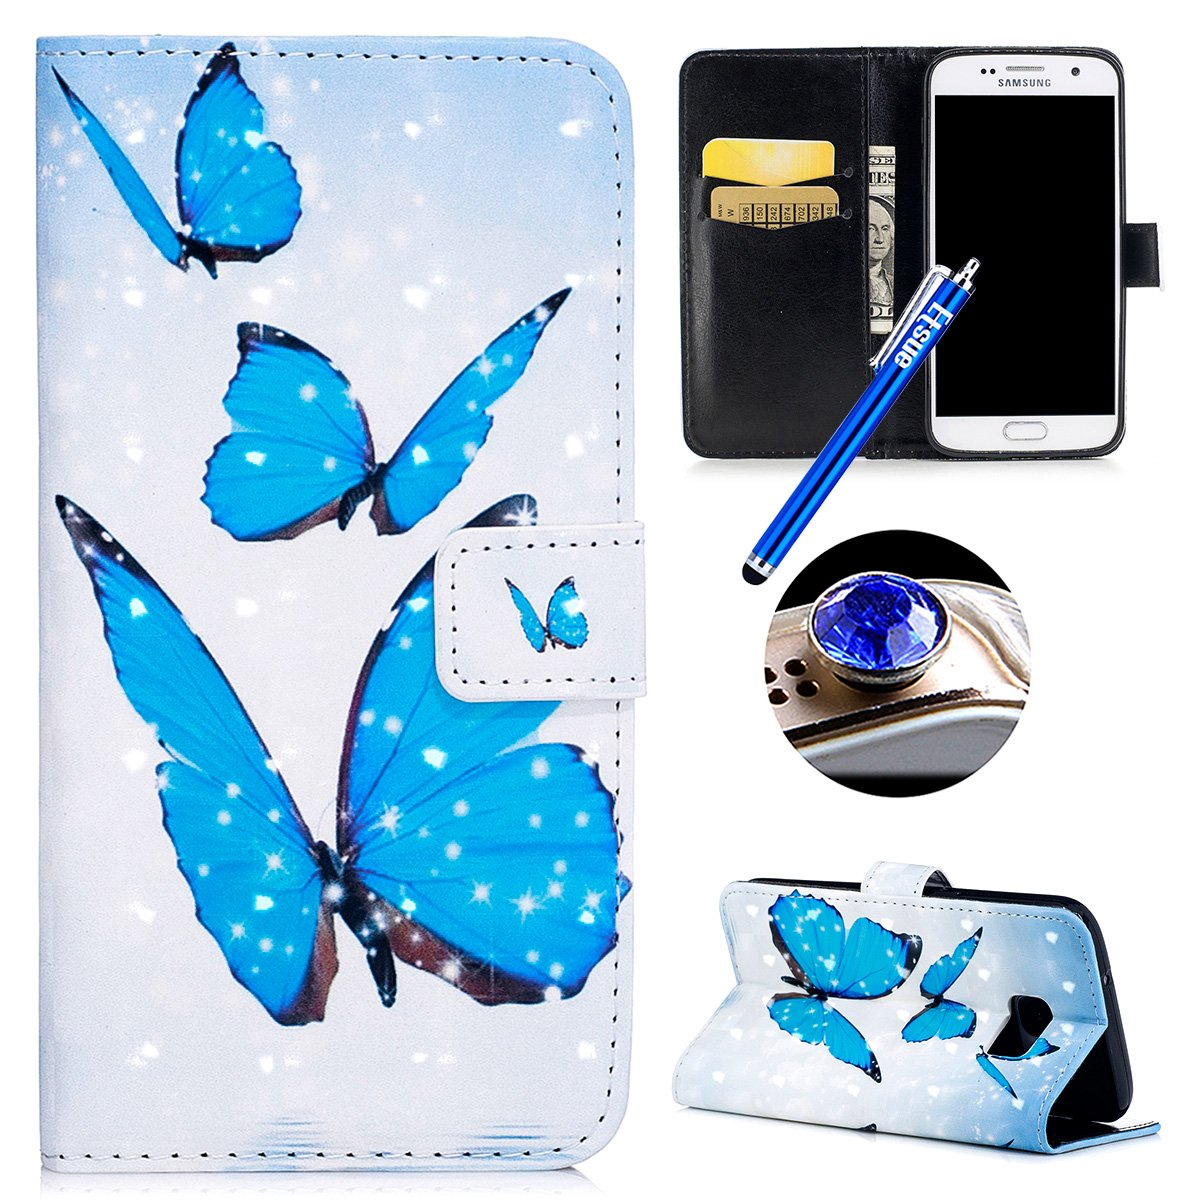 Etsue Samsung Galaxy S7 Glitter Leather Case,Samsung Galaxy S7 Wallet Case, 3D Bling Glitter Colorful Elegant Pattern Flip Leather Wallet Case Cover Bookstyle Flip Folio Protective Cover [Card Slots][Stand Feature] for Samsung Galaxy S7+Blue Stylus Pen+Bli